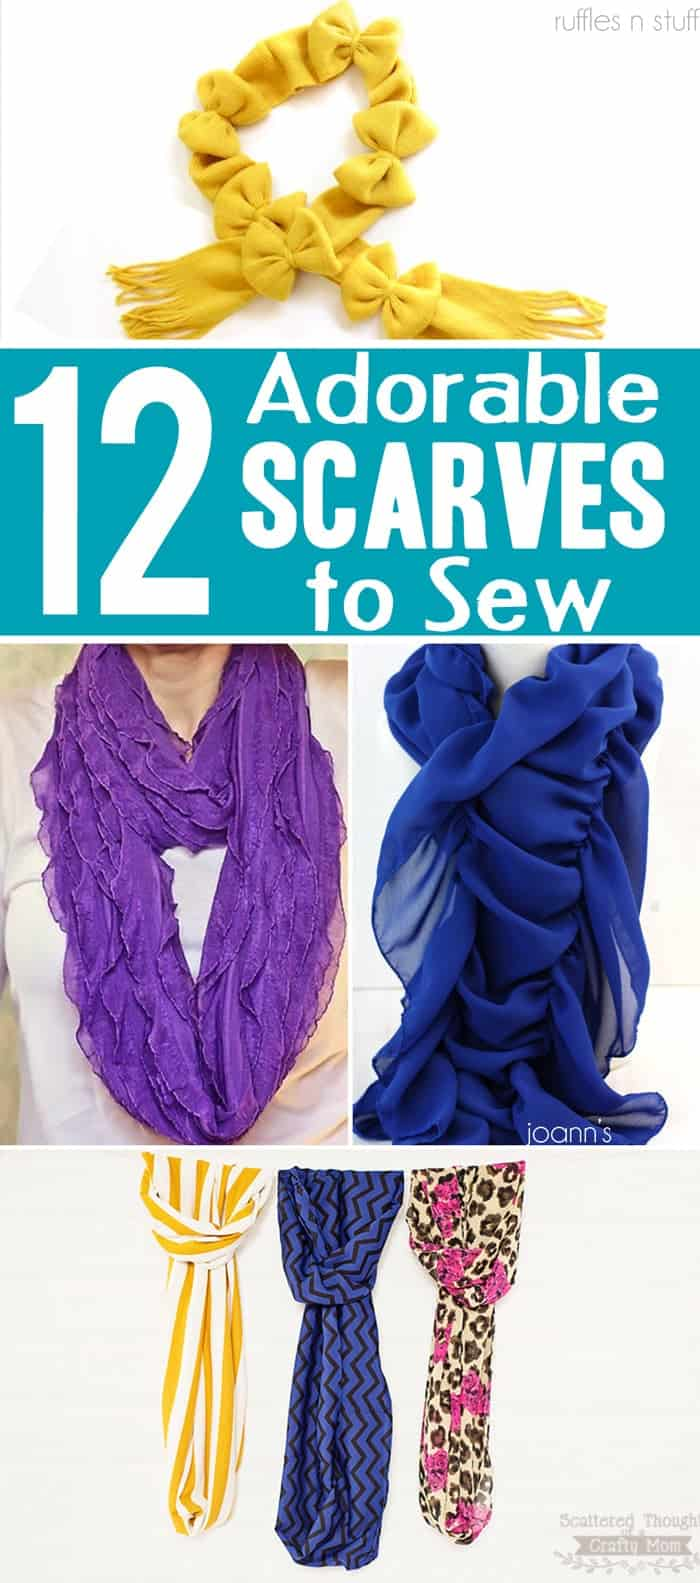 12 Adorable Scarves to Sew for Fall and Winter